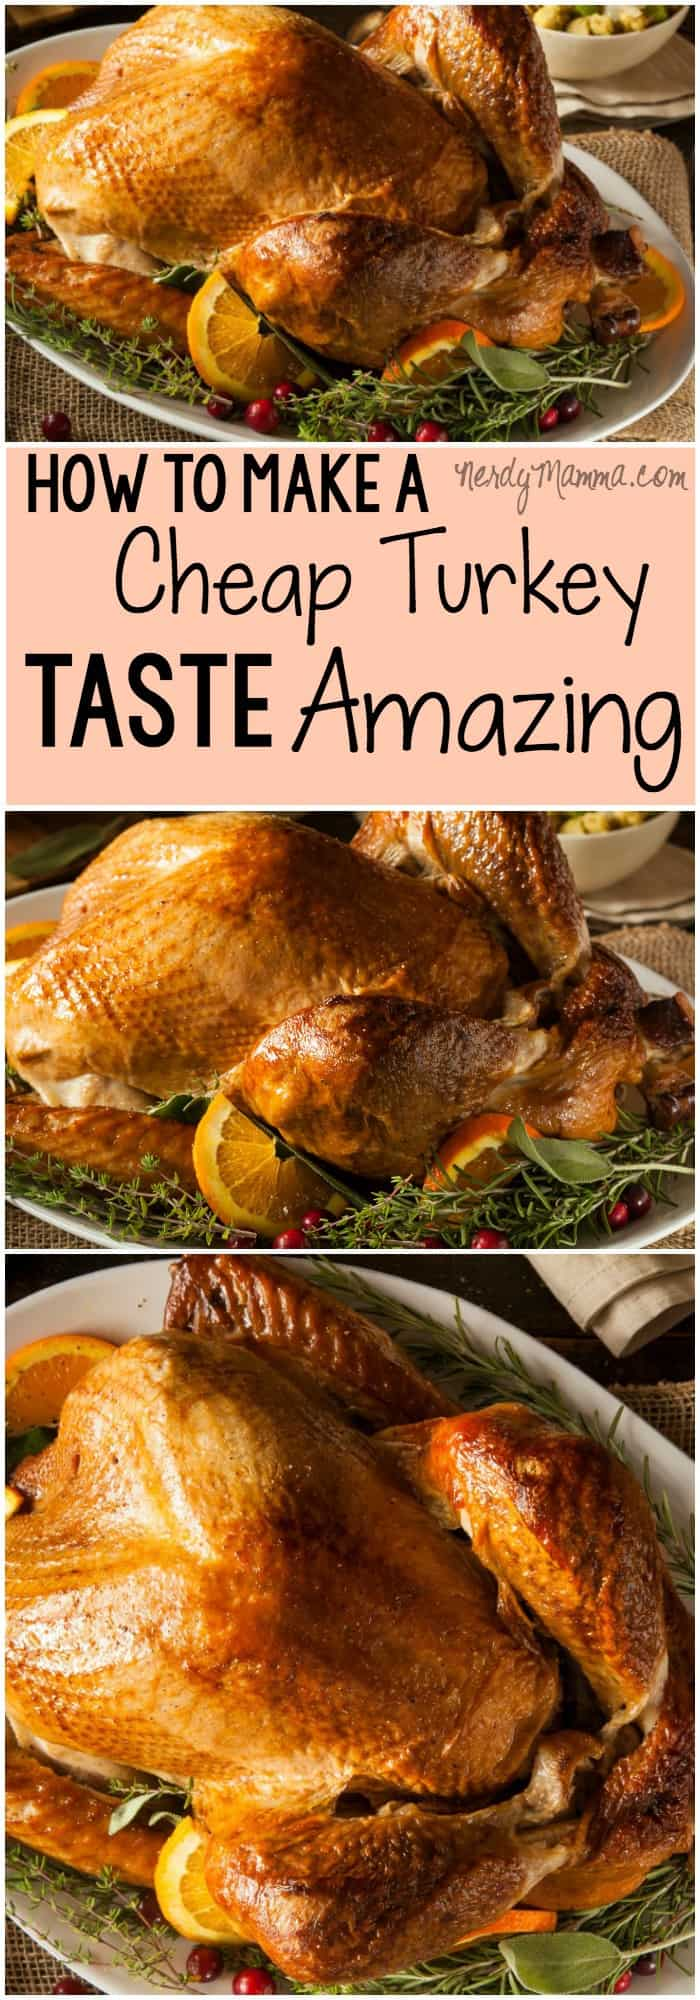 I love this recipe for making a cheap turkey taste awesome. Its so simple and sounds great!